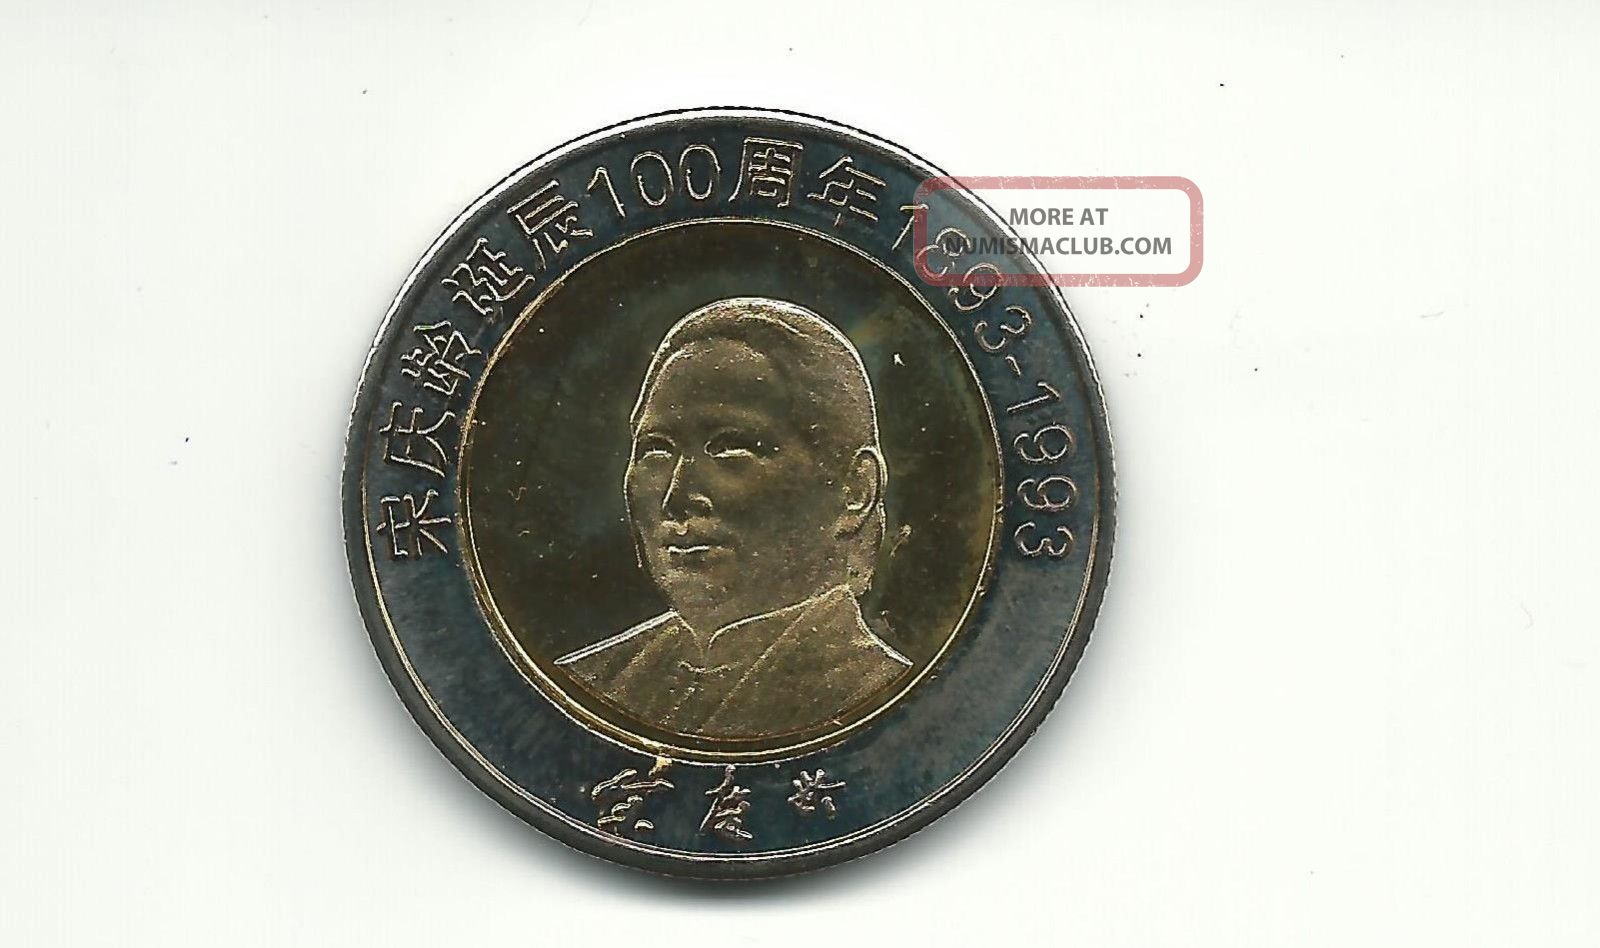 China 1993 Former Leader Of Prc Bi - Metallic Token Coin (l1)